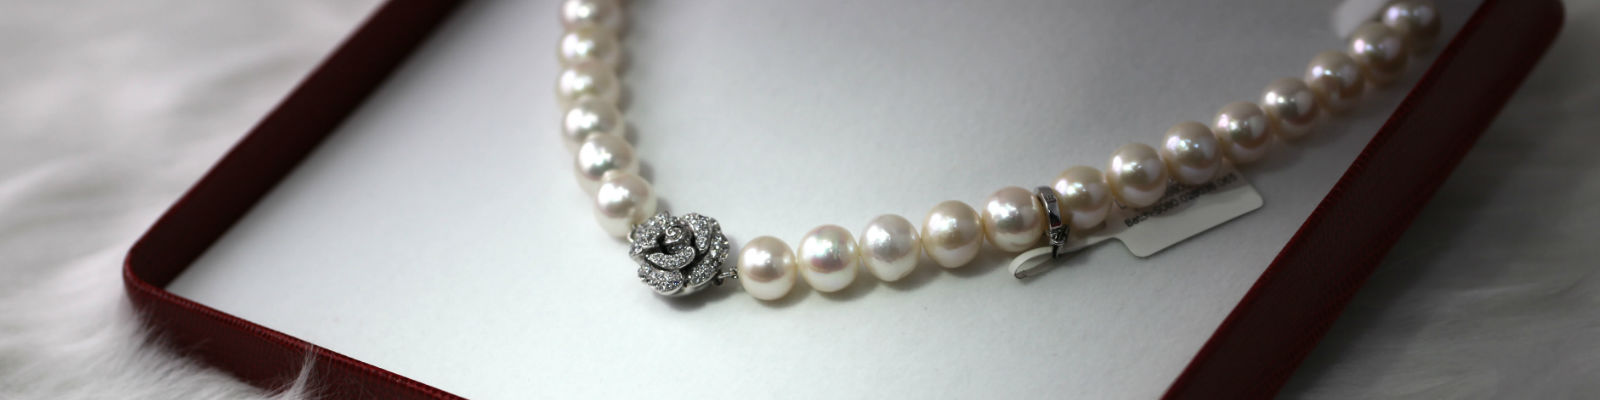 Pearl Necklaces at Albert's Diamond Jewelers